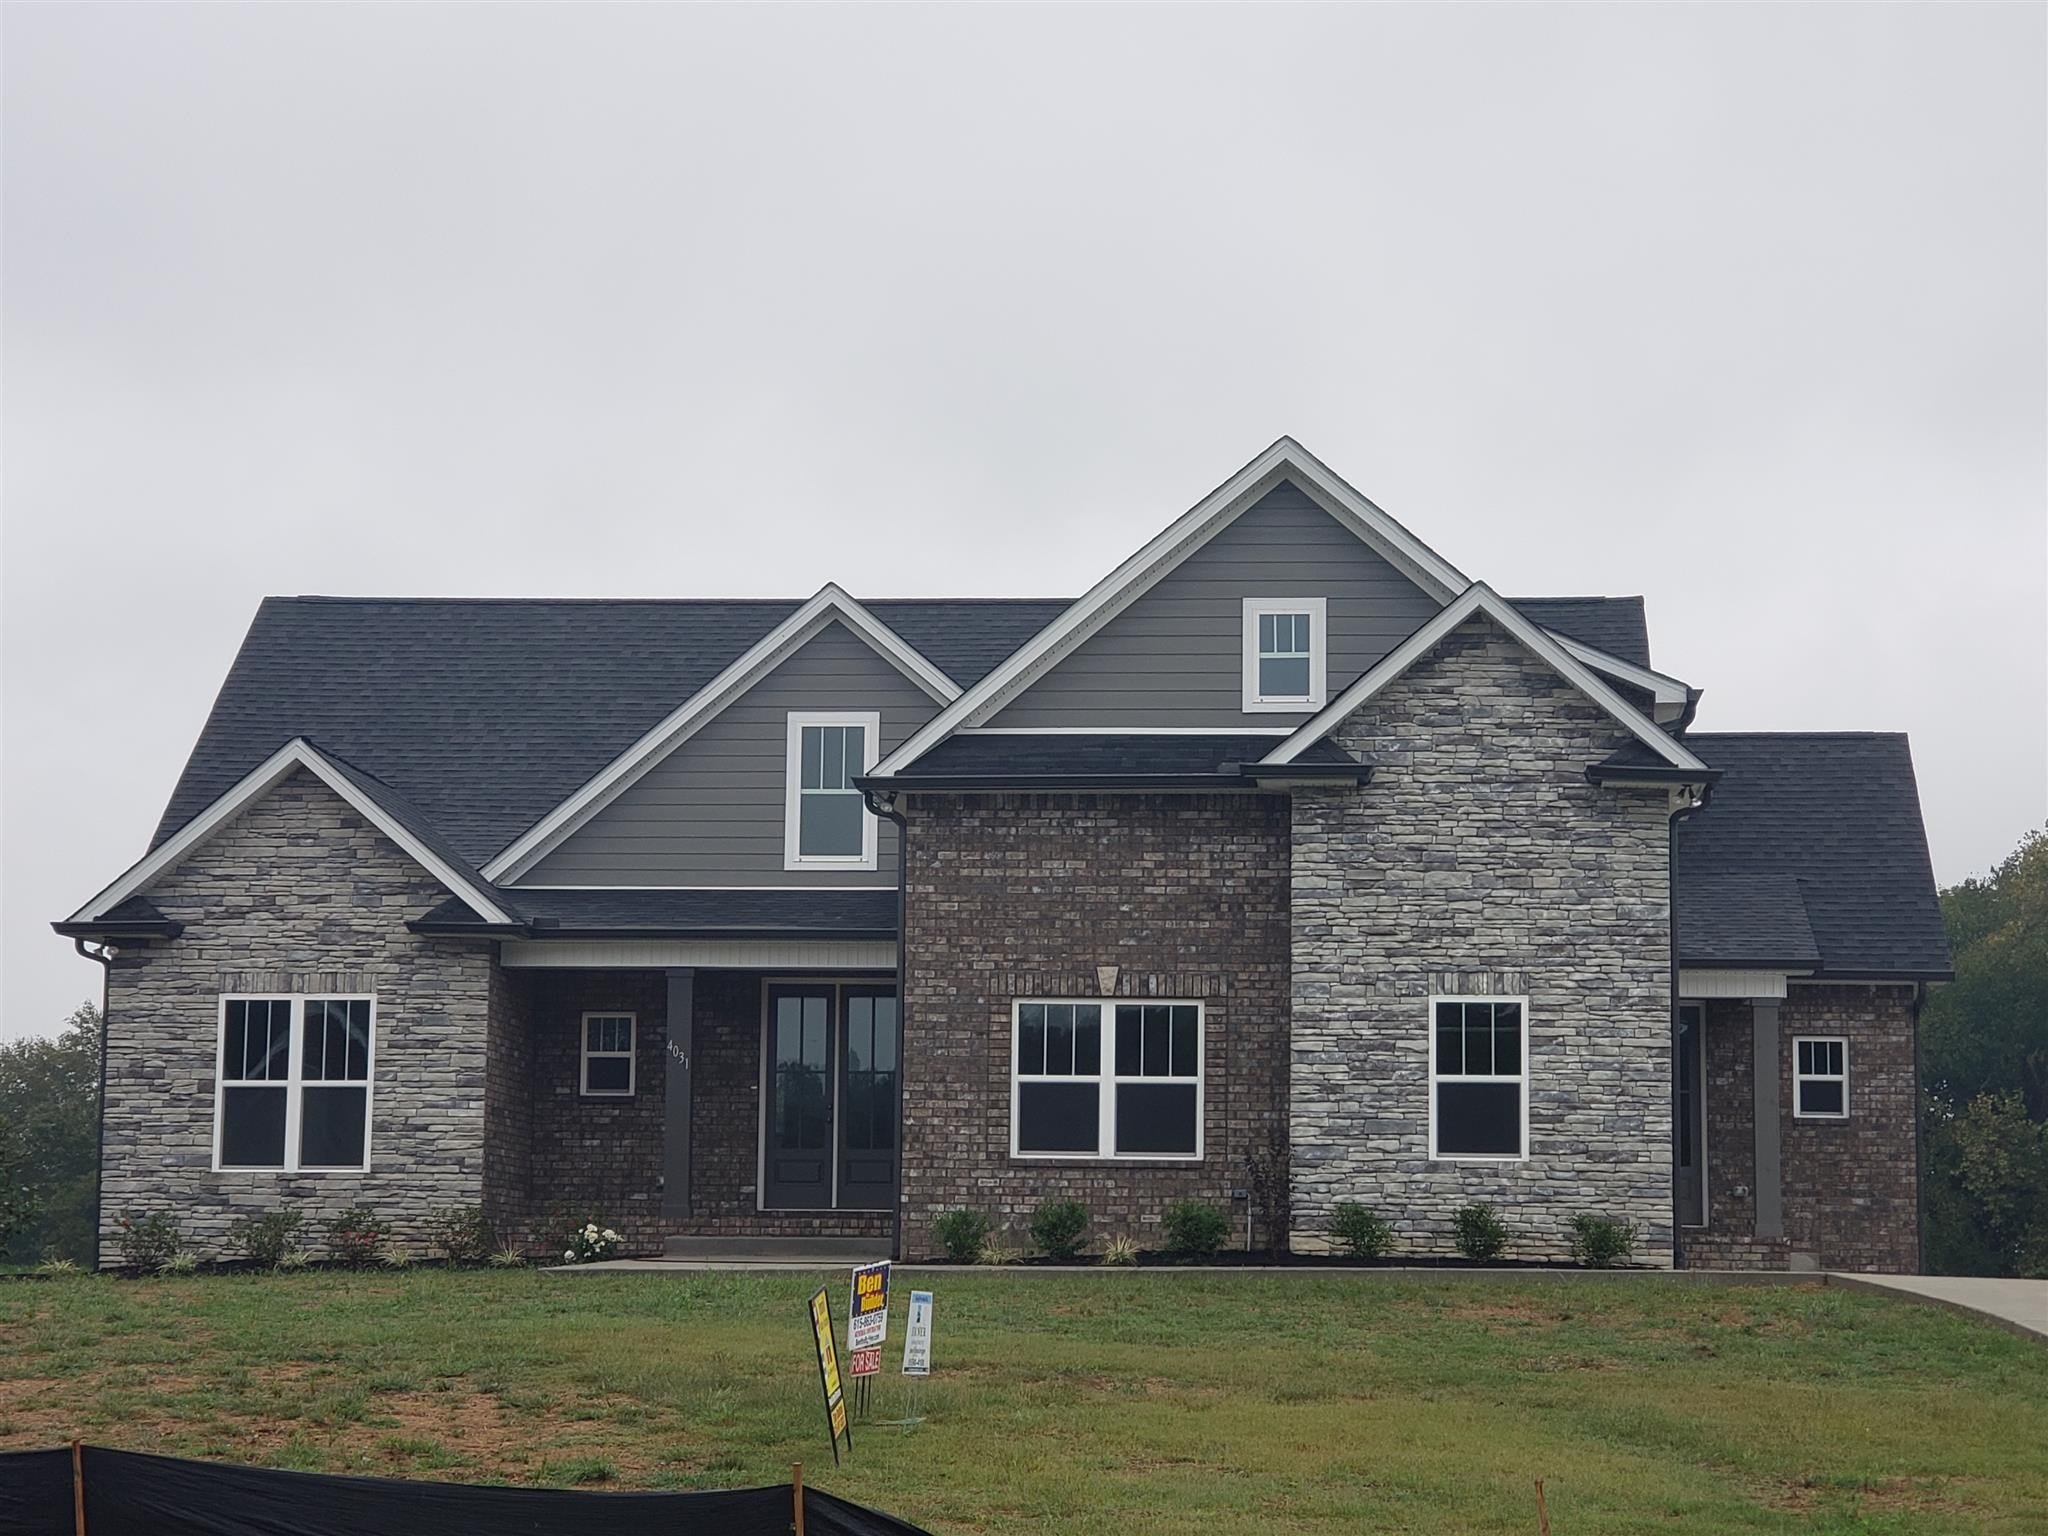 4031 Ironwood Dr, Greenbrier, TN 37073 - Greenbrier, TN real estate listing